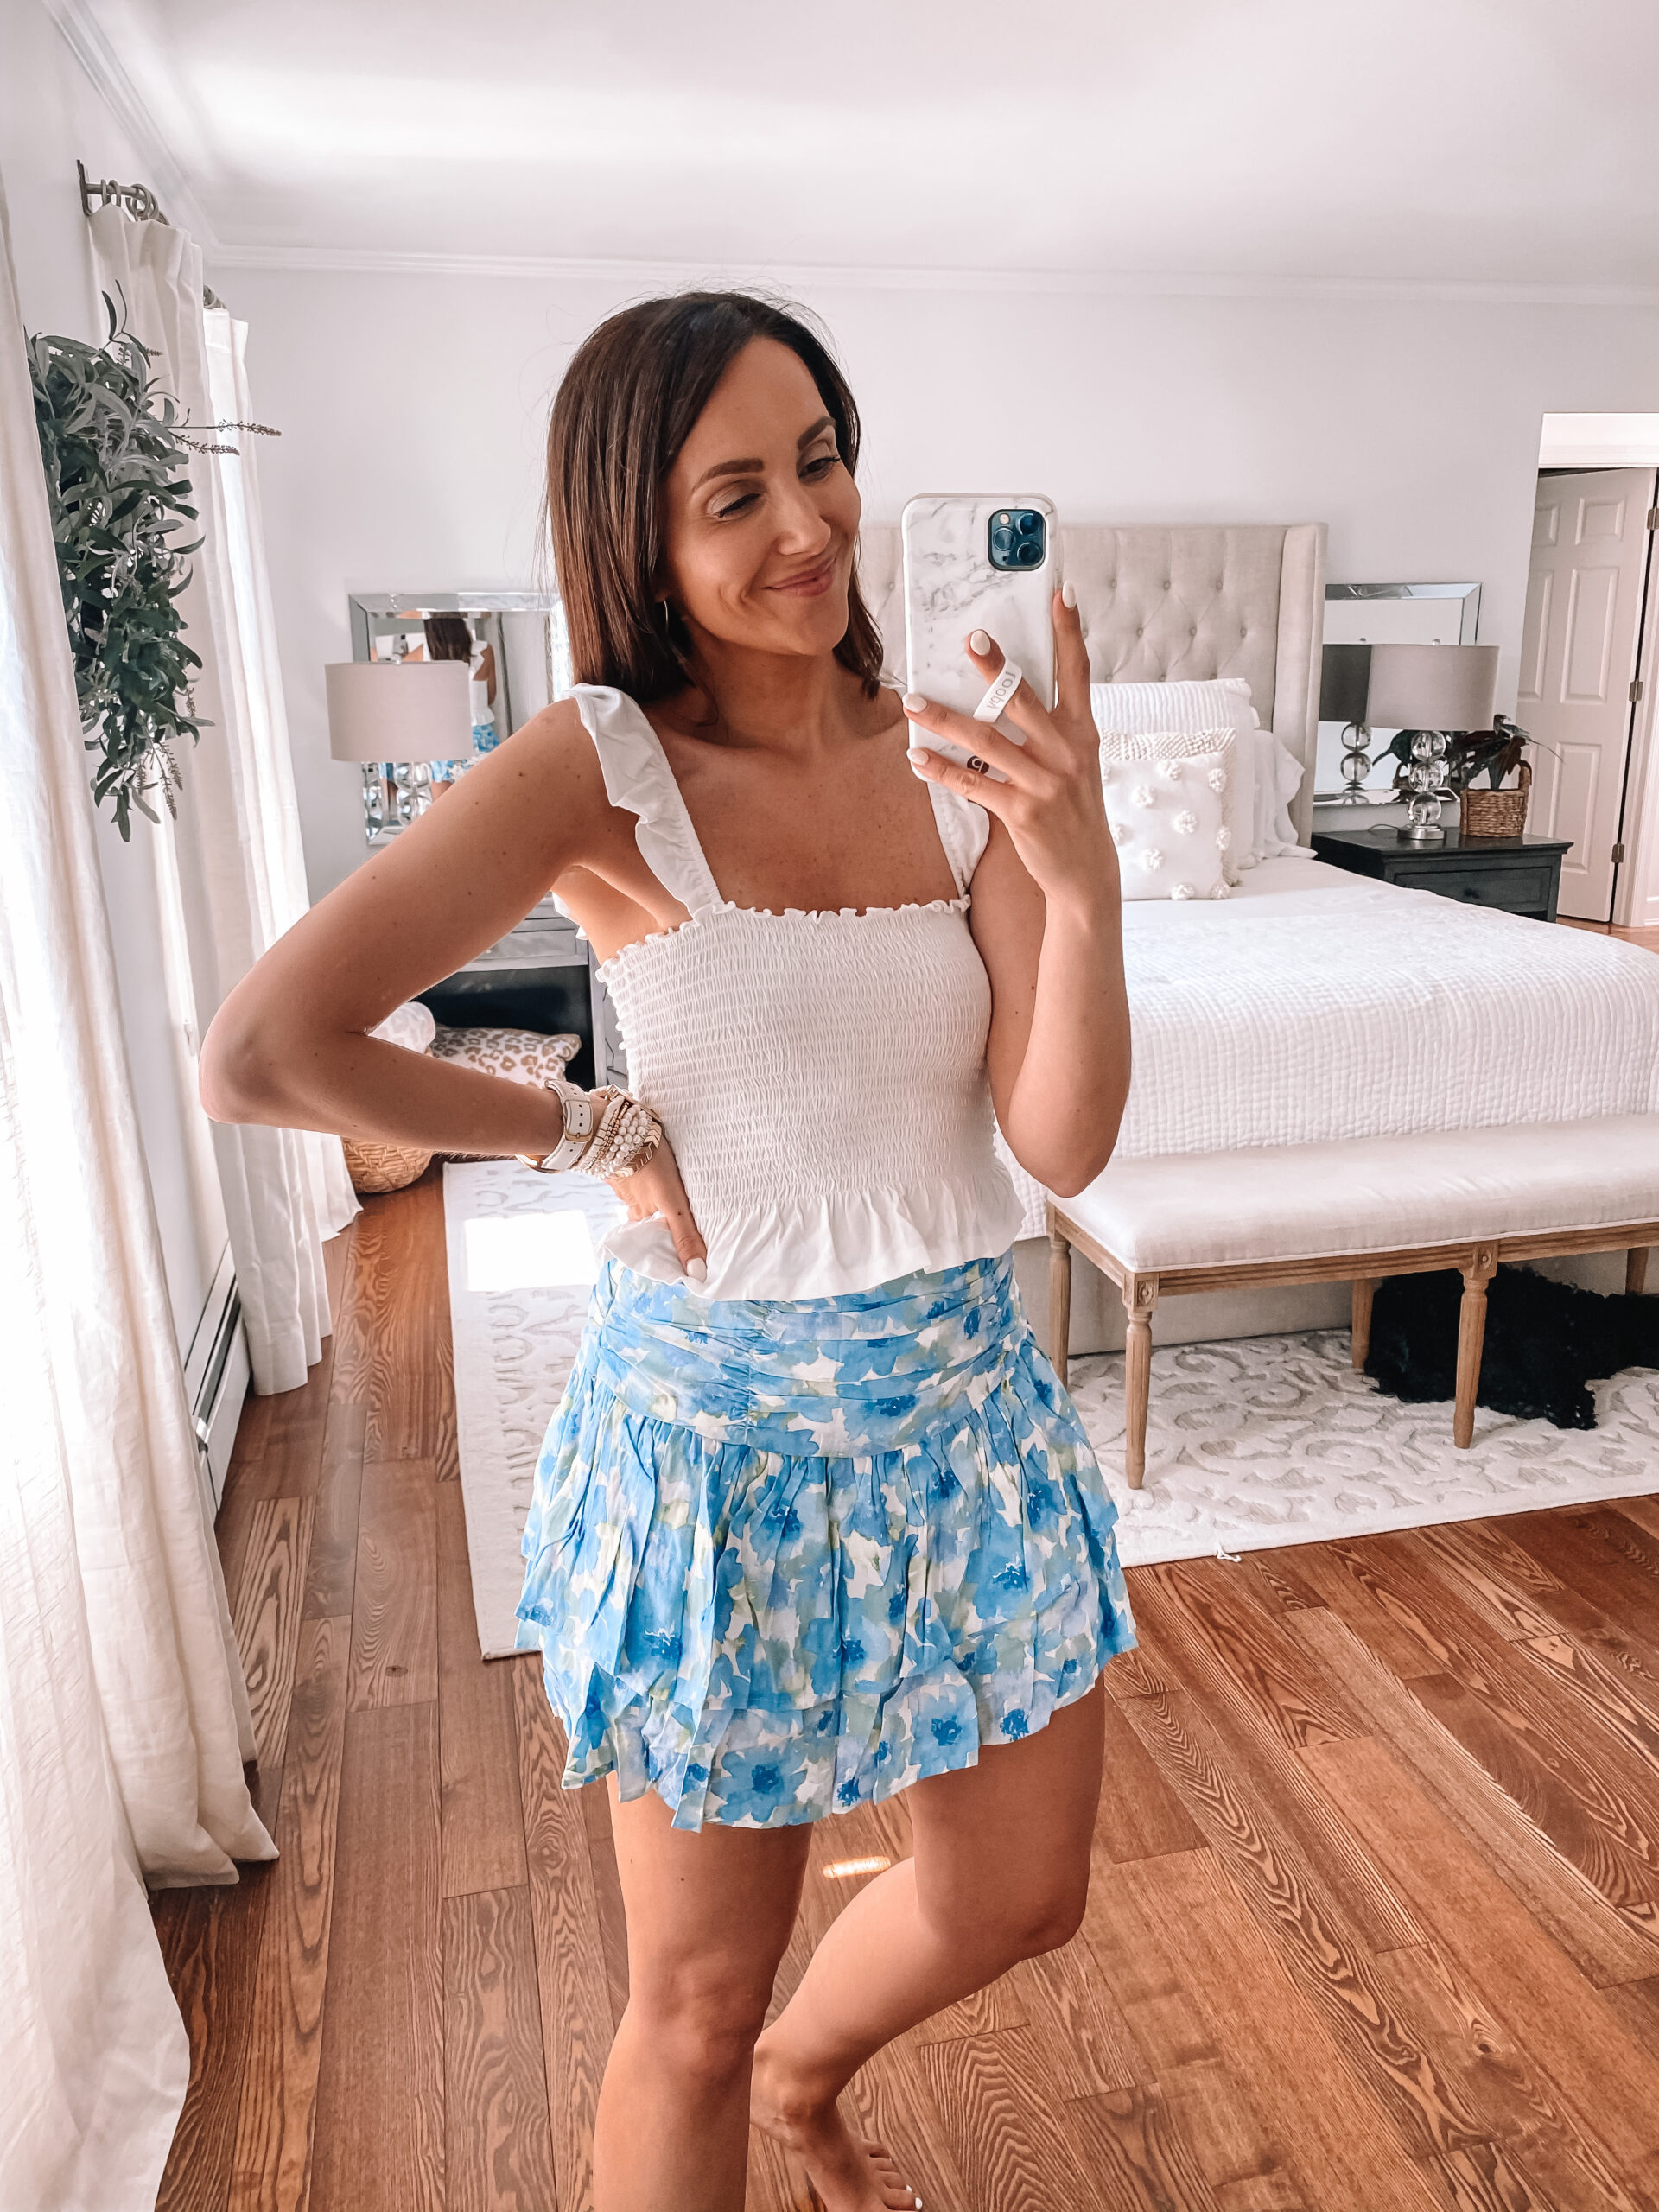 Forever 21 skirt and top